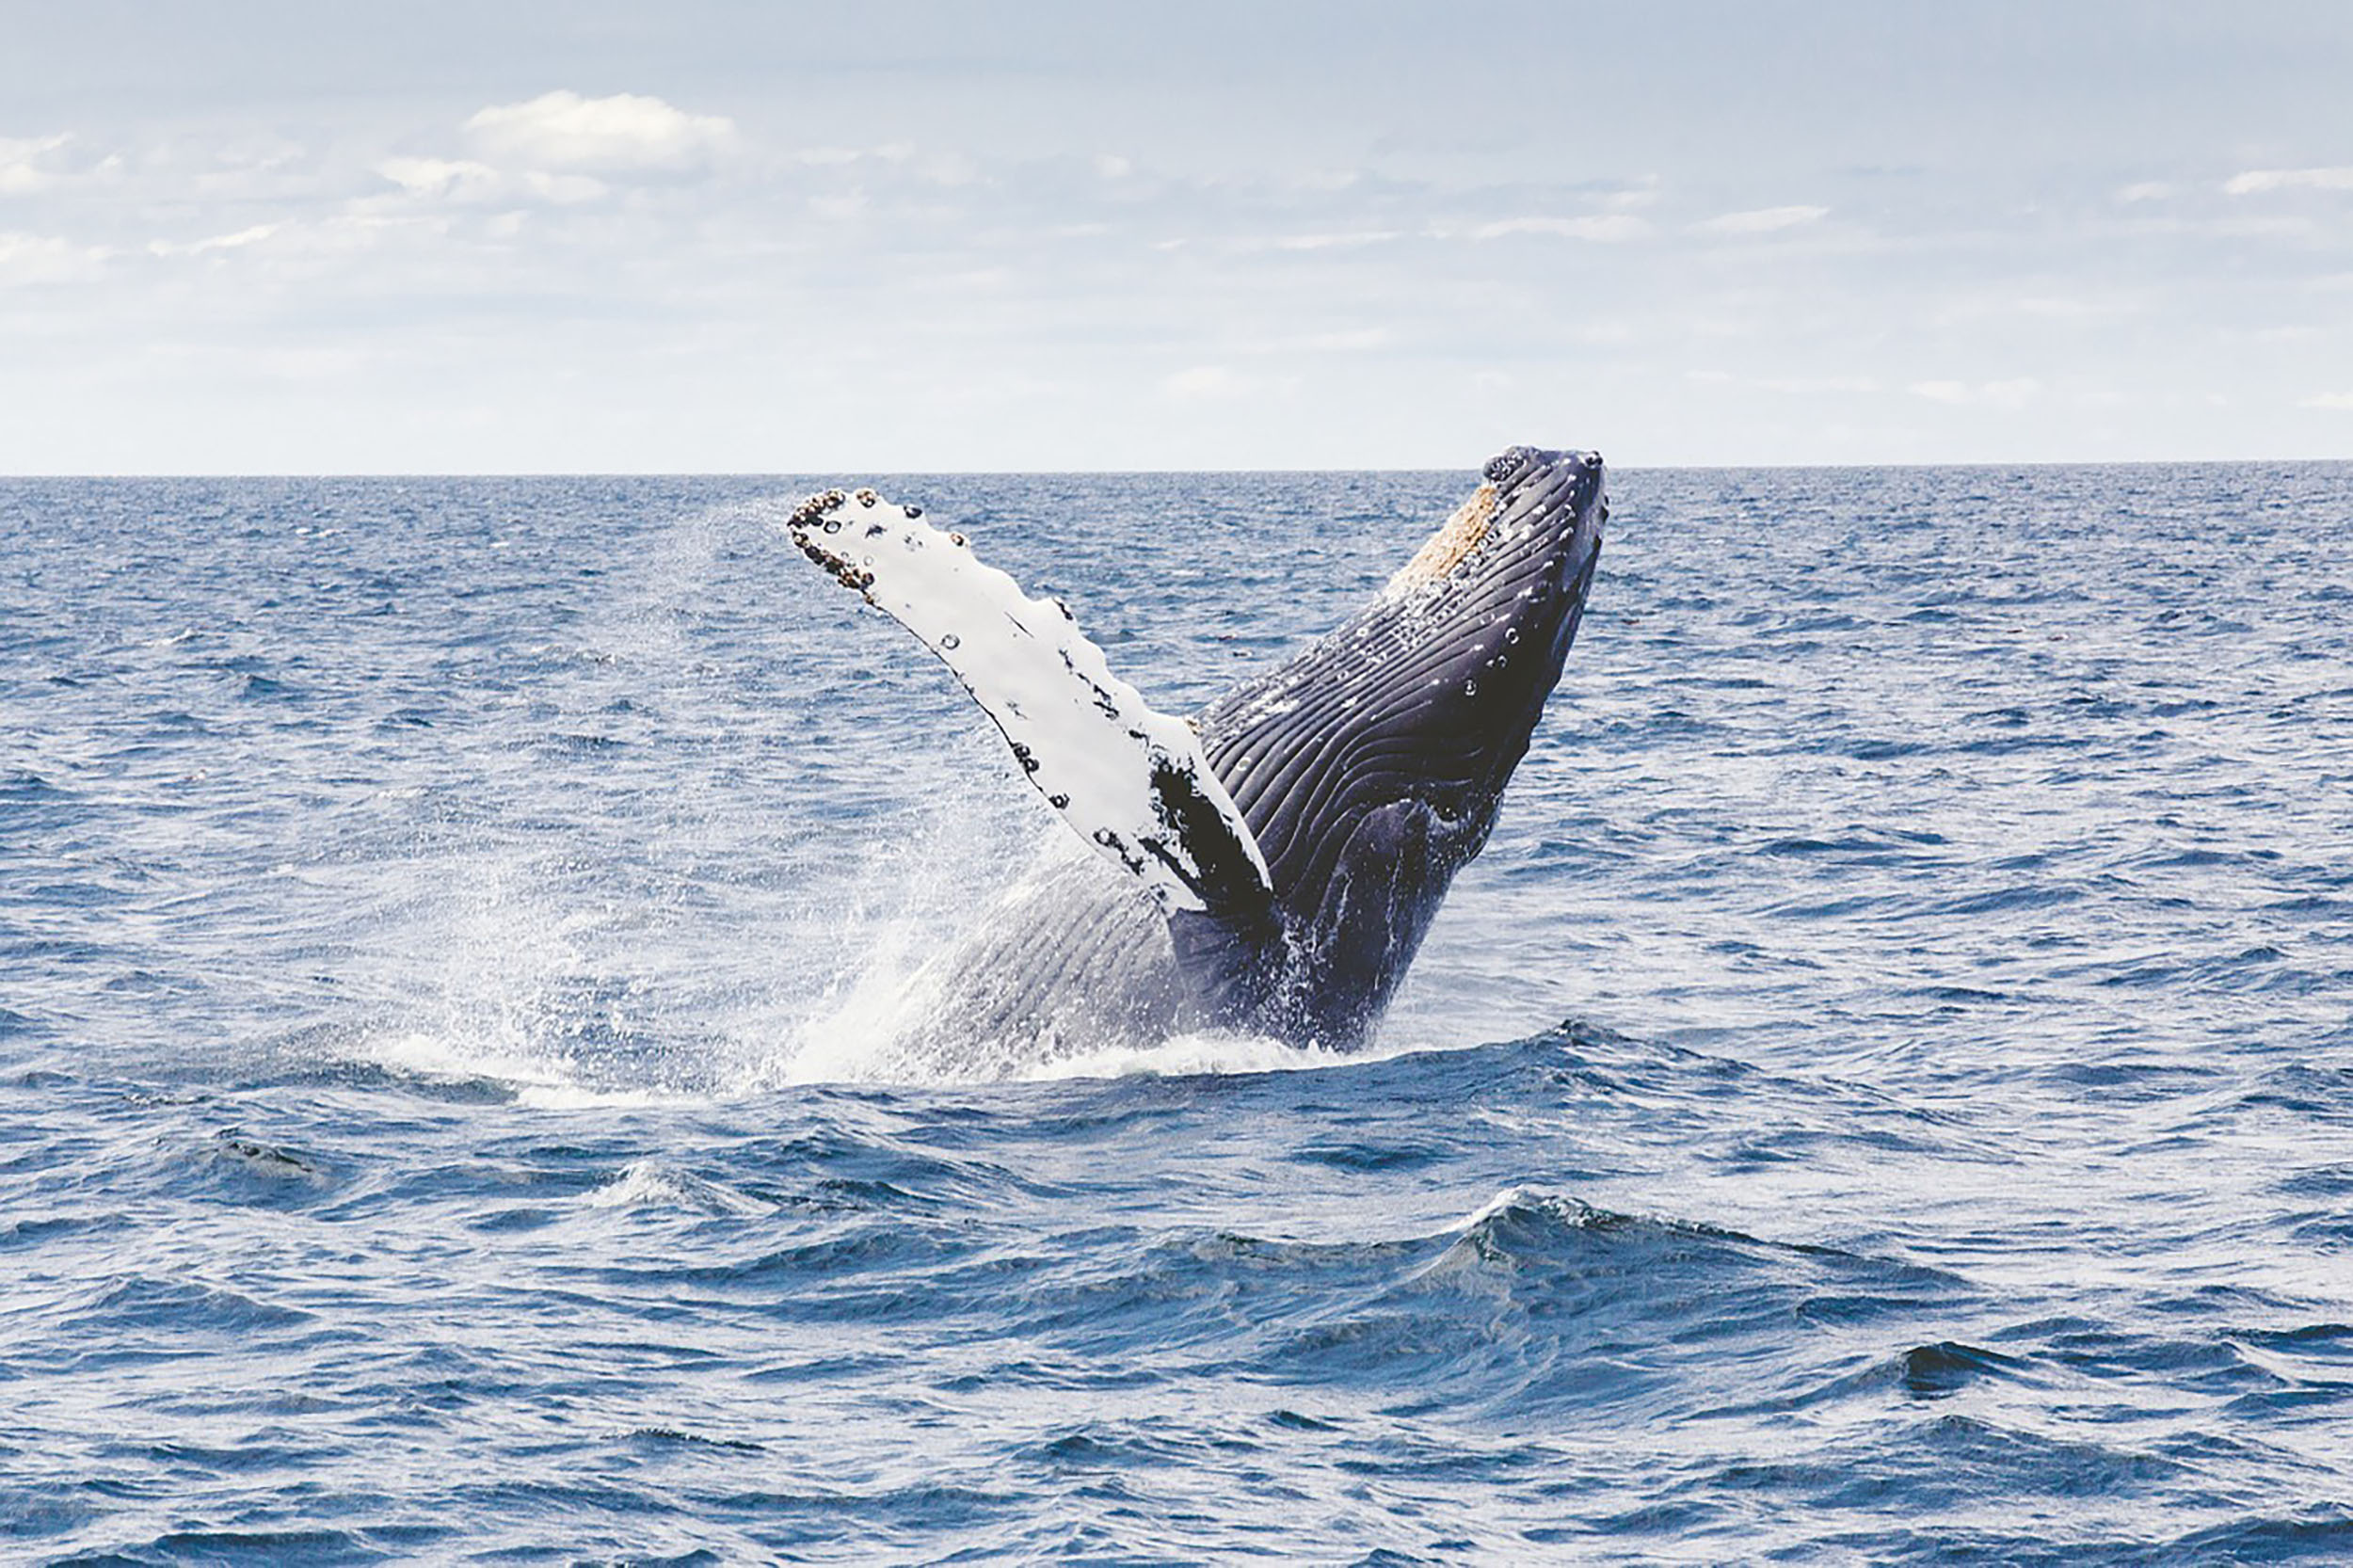 Go whale watching in the Indian Ocean